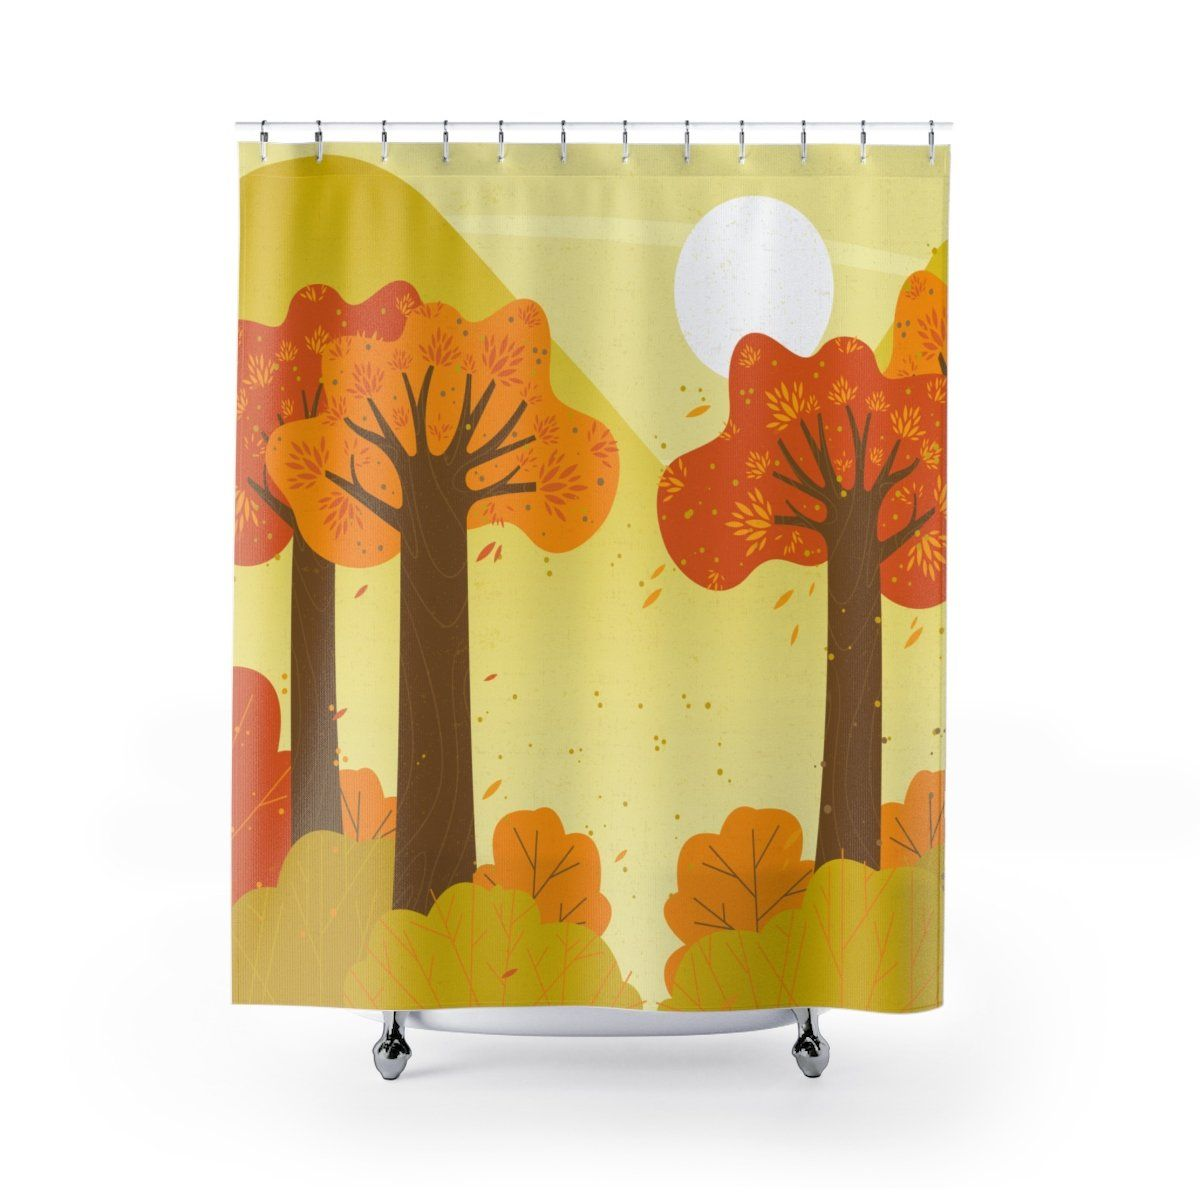 Autumn Shower Curtain Curtains Special Gifts Lovers Art